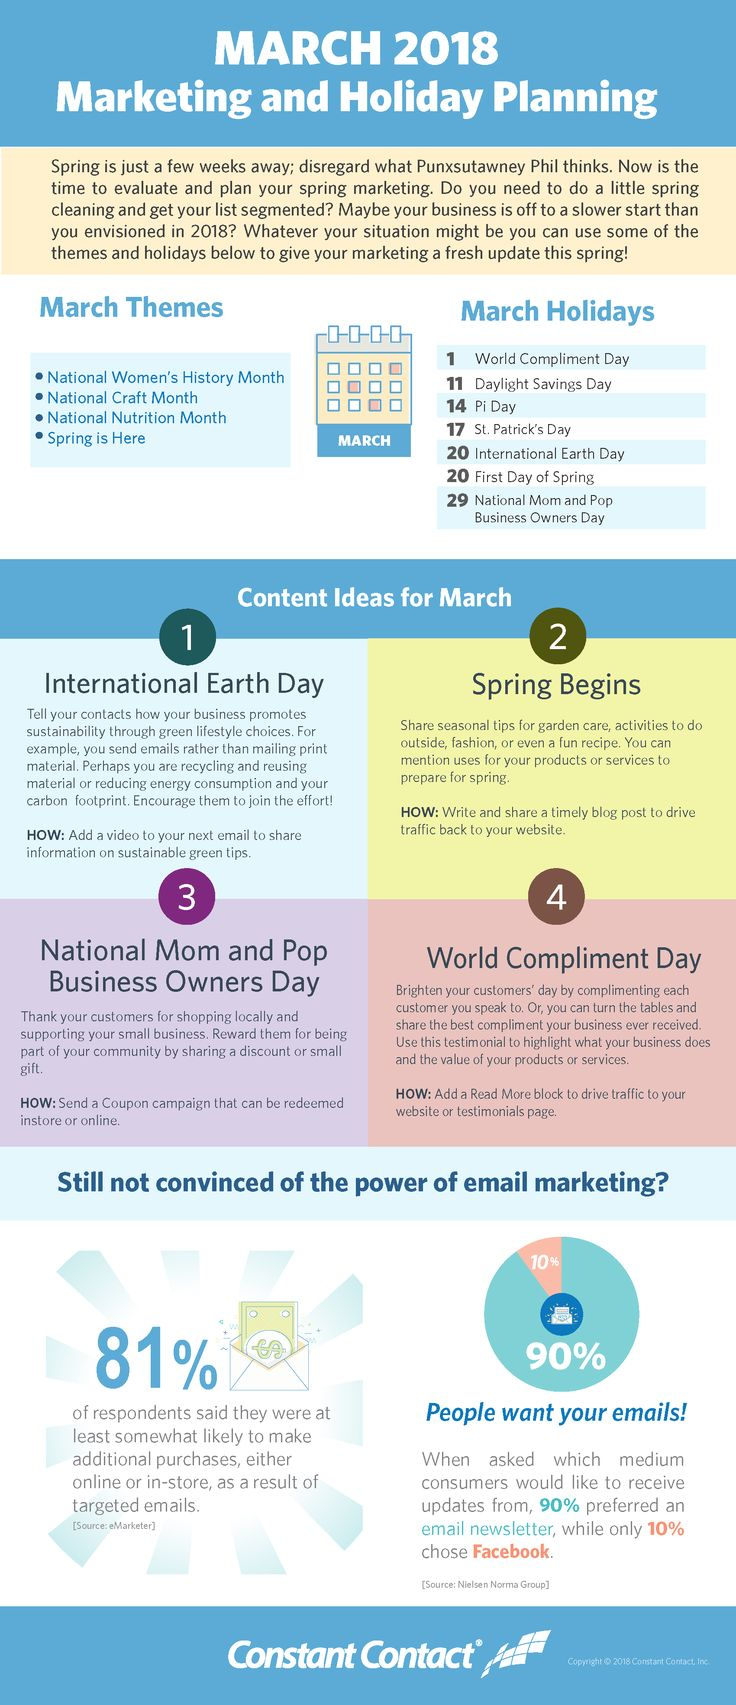 50+ best Email campaign ideas for your business images by Constant